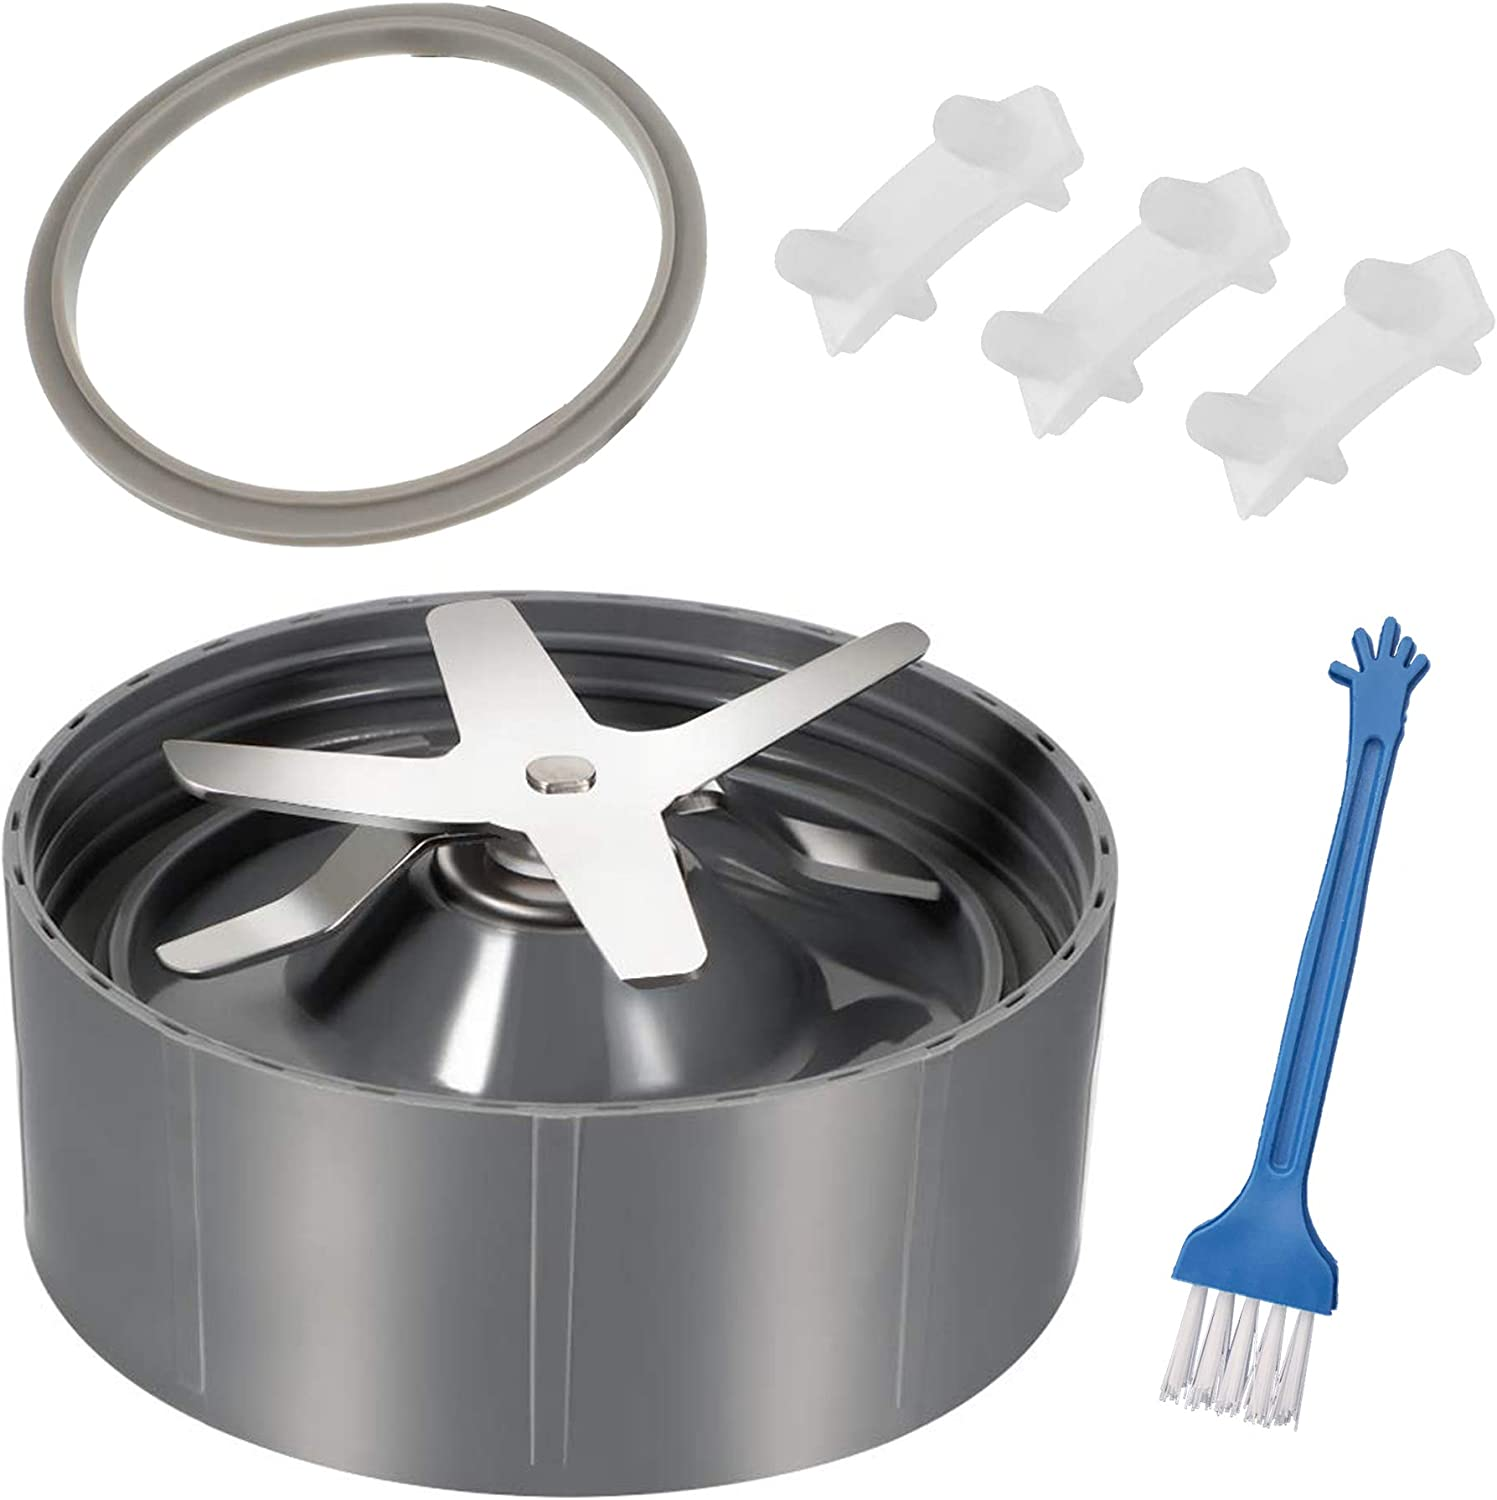 HEAURBE 6 Fins Blender Replacement Parts for Nutribullet 600w-900w,Extractor Blade Replacement for Nutribullet 600w & 900w Pro Plus NB-101s, Blender Blade gasket Replacement Blender Accessories